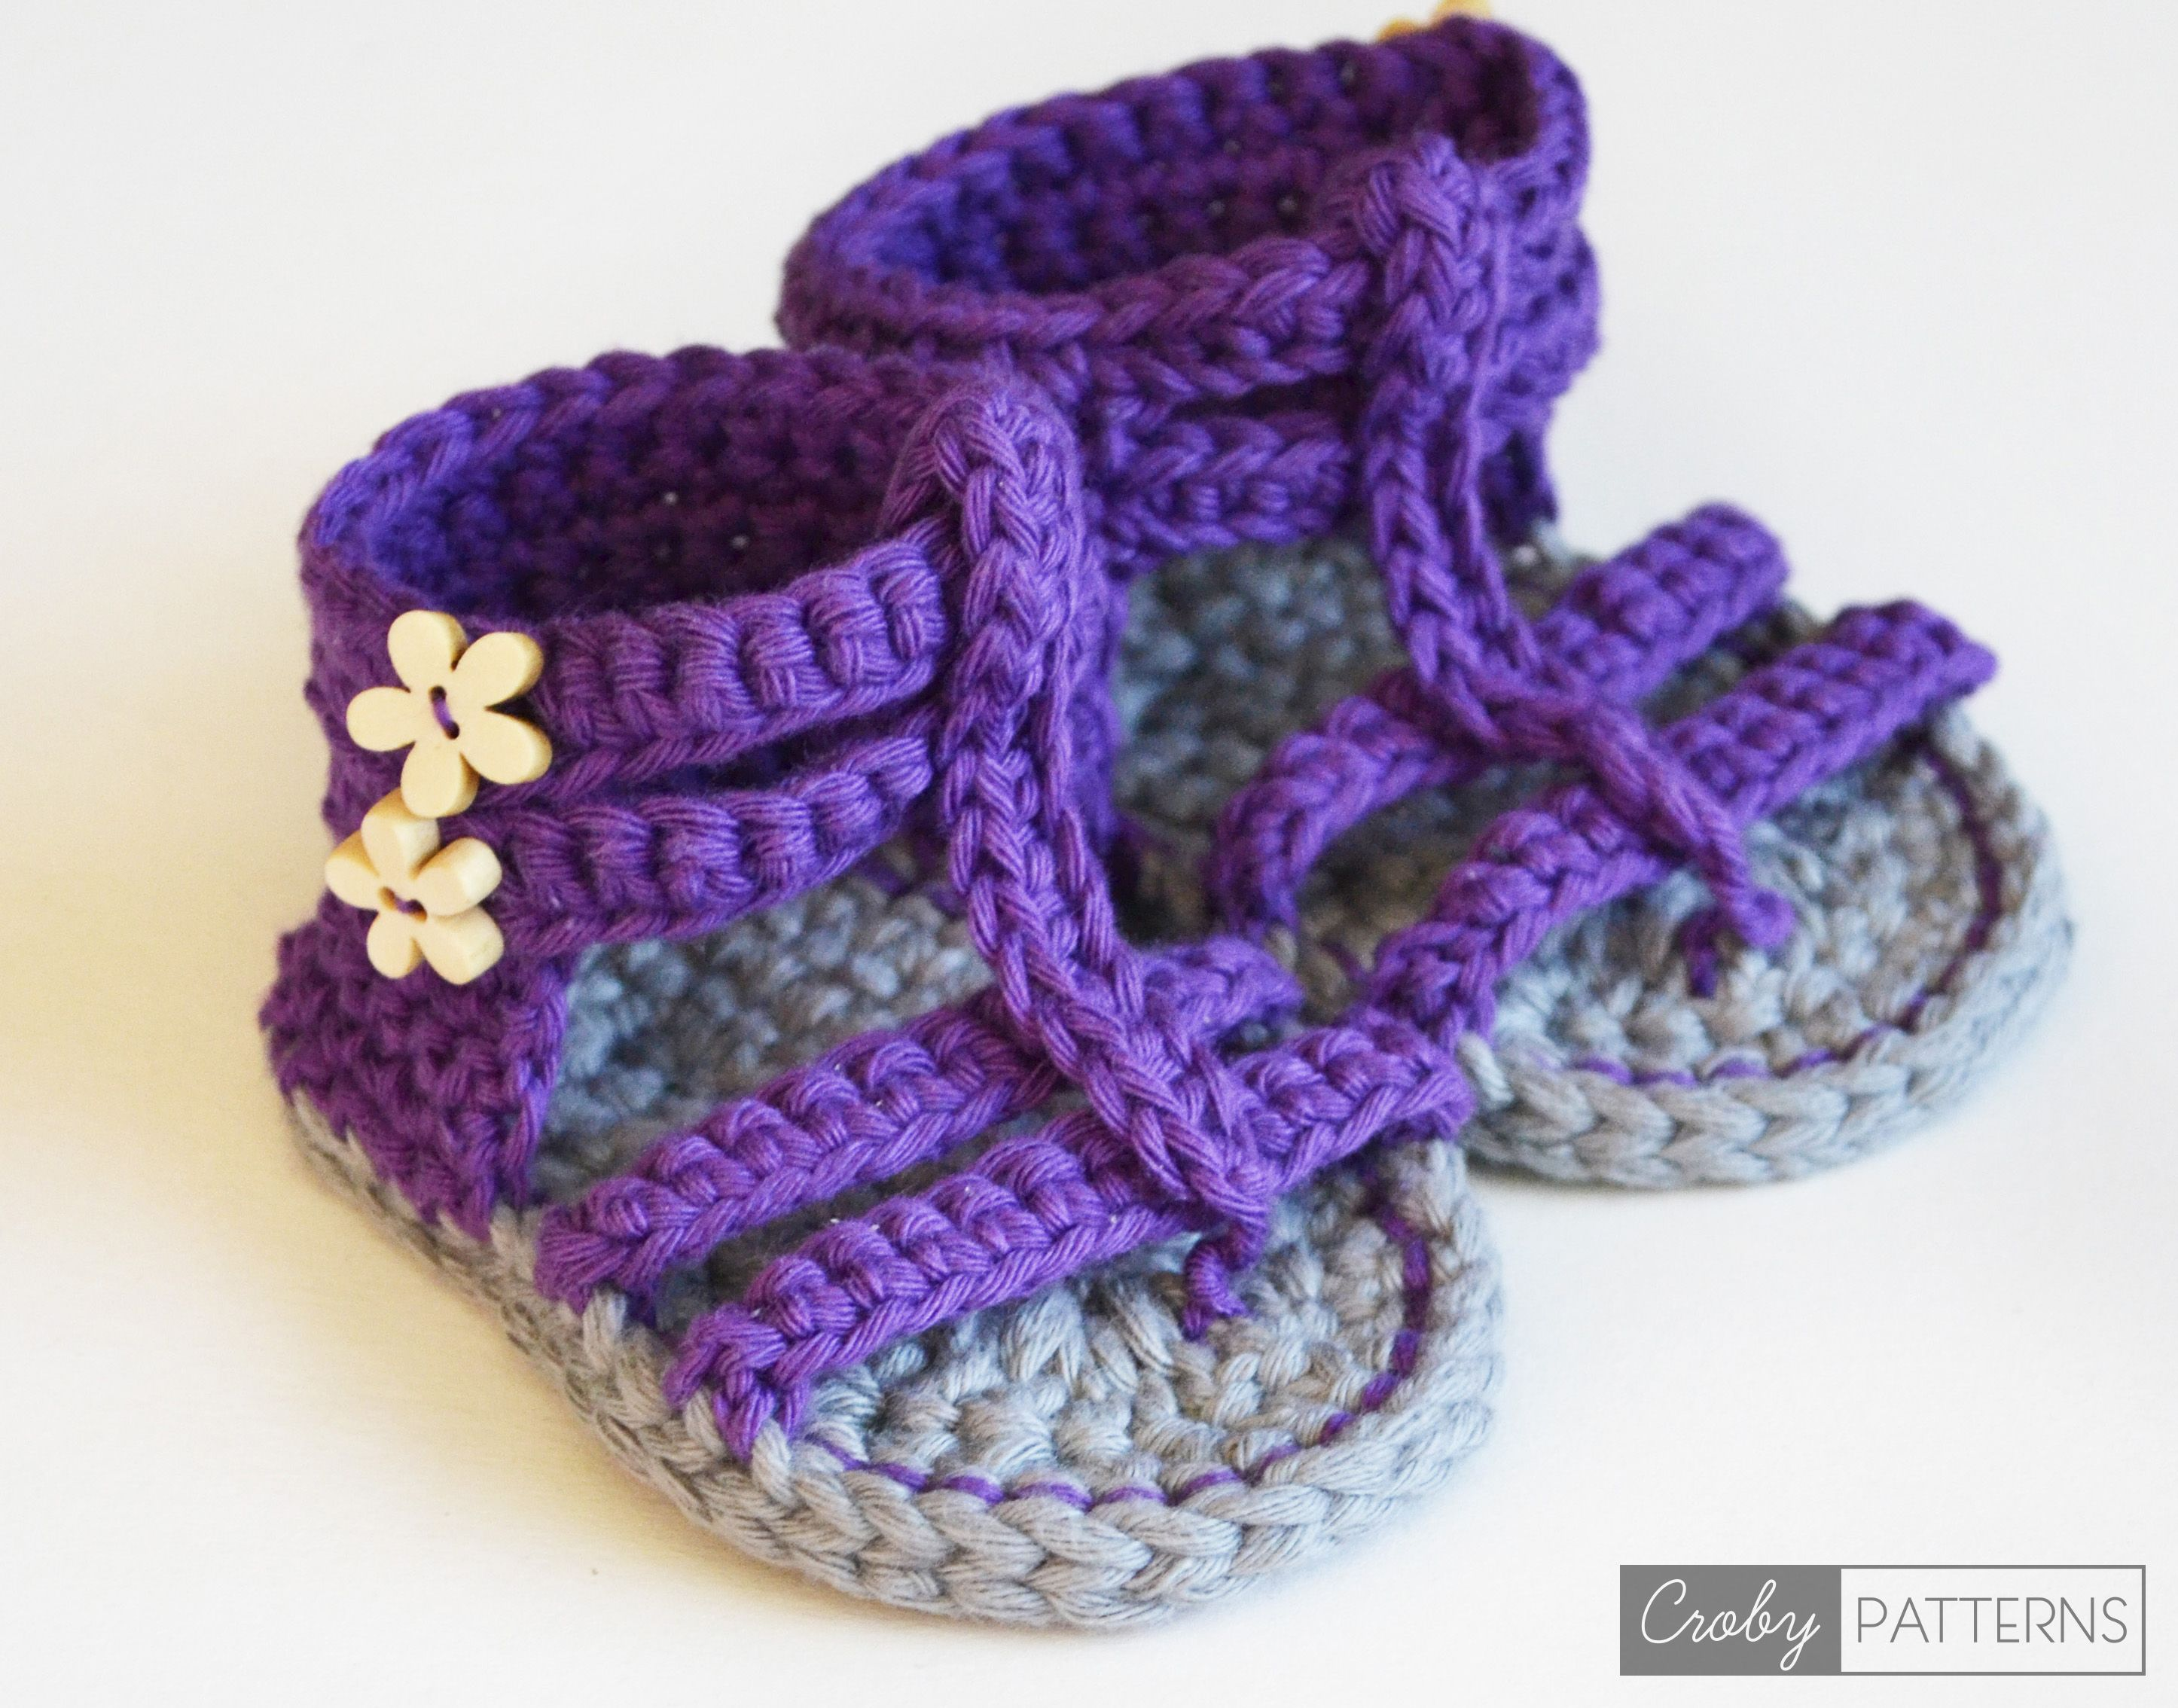 Great patterns for crochet baby booties crochet baby booties great patterns for crochet baby booties bankloansurffo Image collections